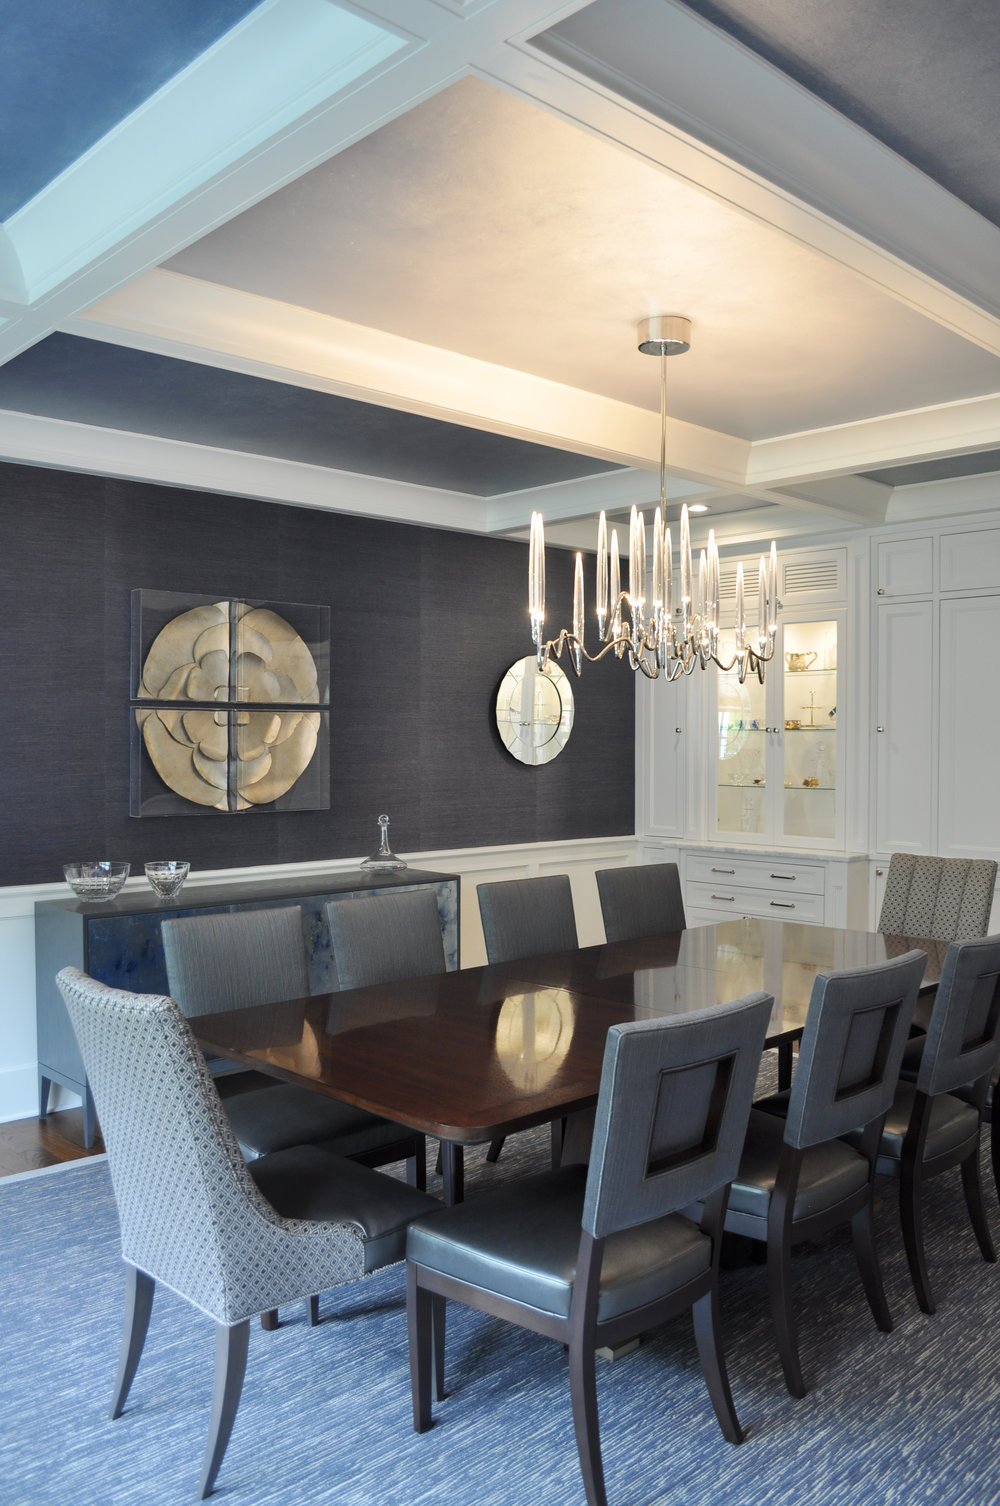 CELESTIAL NIGHT SKY TIMELESS DINING ROOM , New Rochelle, NY: The mood of this midnight blue dining room  is transporting and its style, refined and enduring. Custom-designed coffered ceiling, wainscoting and display cabinets with a built-in wet bar establish architectural interest in the large otherwise vacuous space.  An ombre design effect starts at the center of the room, where a pearlescent silver-blue faux paint finish on the center ground of the coffered ceiling is highlighted by the lighted crystals of the curving organic-shaped Italian chandelier. The ceiling grounds surrounding this  center ground are a darker blue-silver that lead gracefully into the dark blue grasscloth wall covering. A contemporary blue antiqued mirror sideboard reminds one of a cloudy night sky, while the sculptural four-piece silver medallion art encased in acrylic clear boxes plays with the notion of a full moon. The wood detail cut-out back of the tailored dining chairs repeat the box motif from the ceiling, artwork and wainscoting, while the upholstery marries a textured gray-blue striated back fabric with a subtle metallic gray leather seat fabric. The warm walnut wood dining table with embellished champagne metallic feet sit on an area rug reminiscent of shooting stars as its silver flecks intertwine with midnight blue.